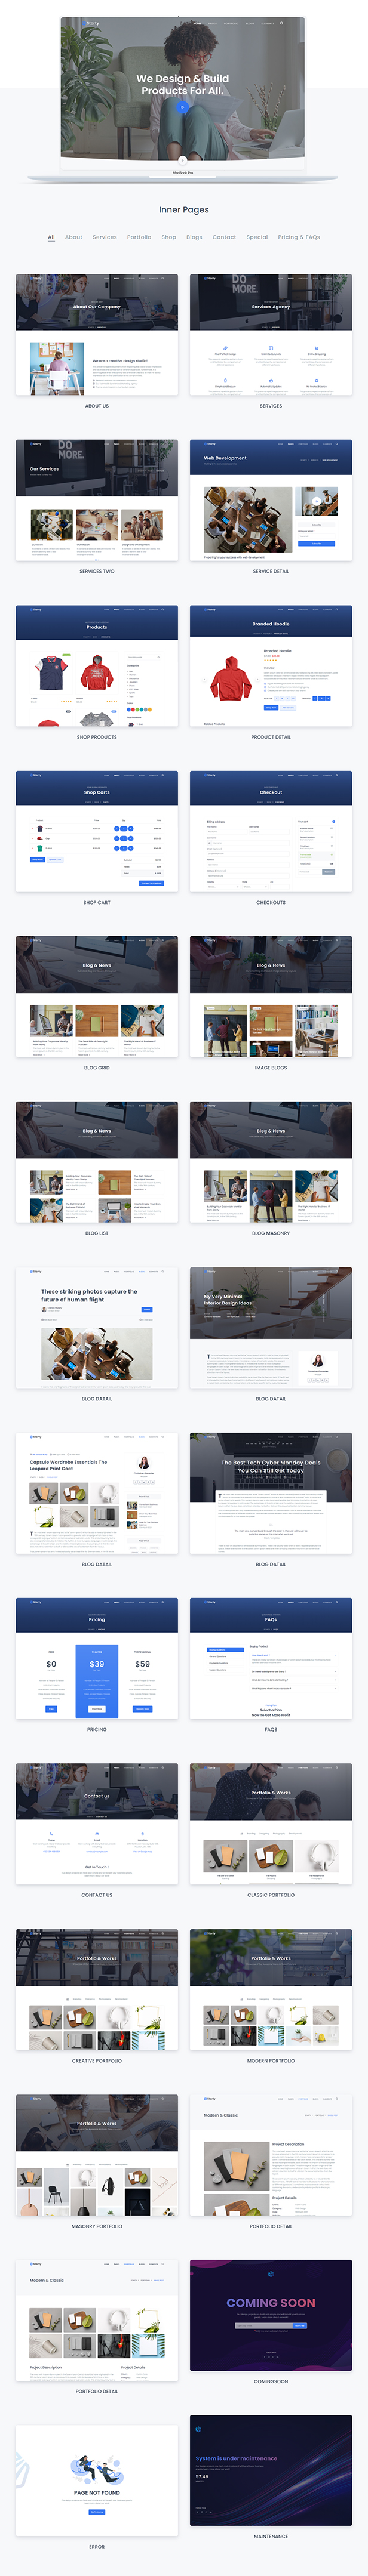 Starty - Bootstrap 5 Multipurpose Template - 4